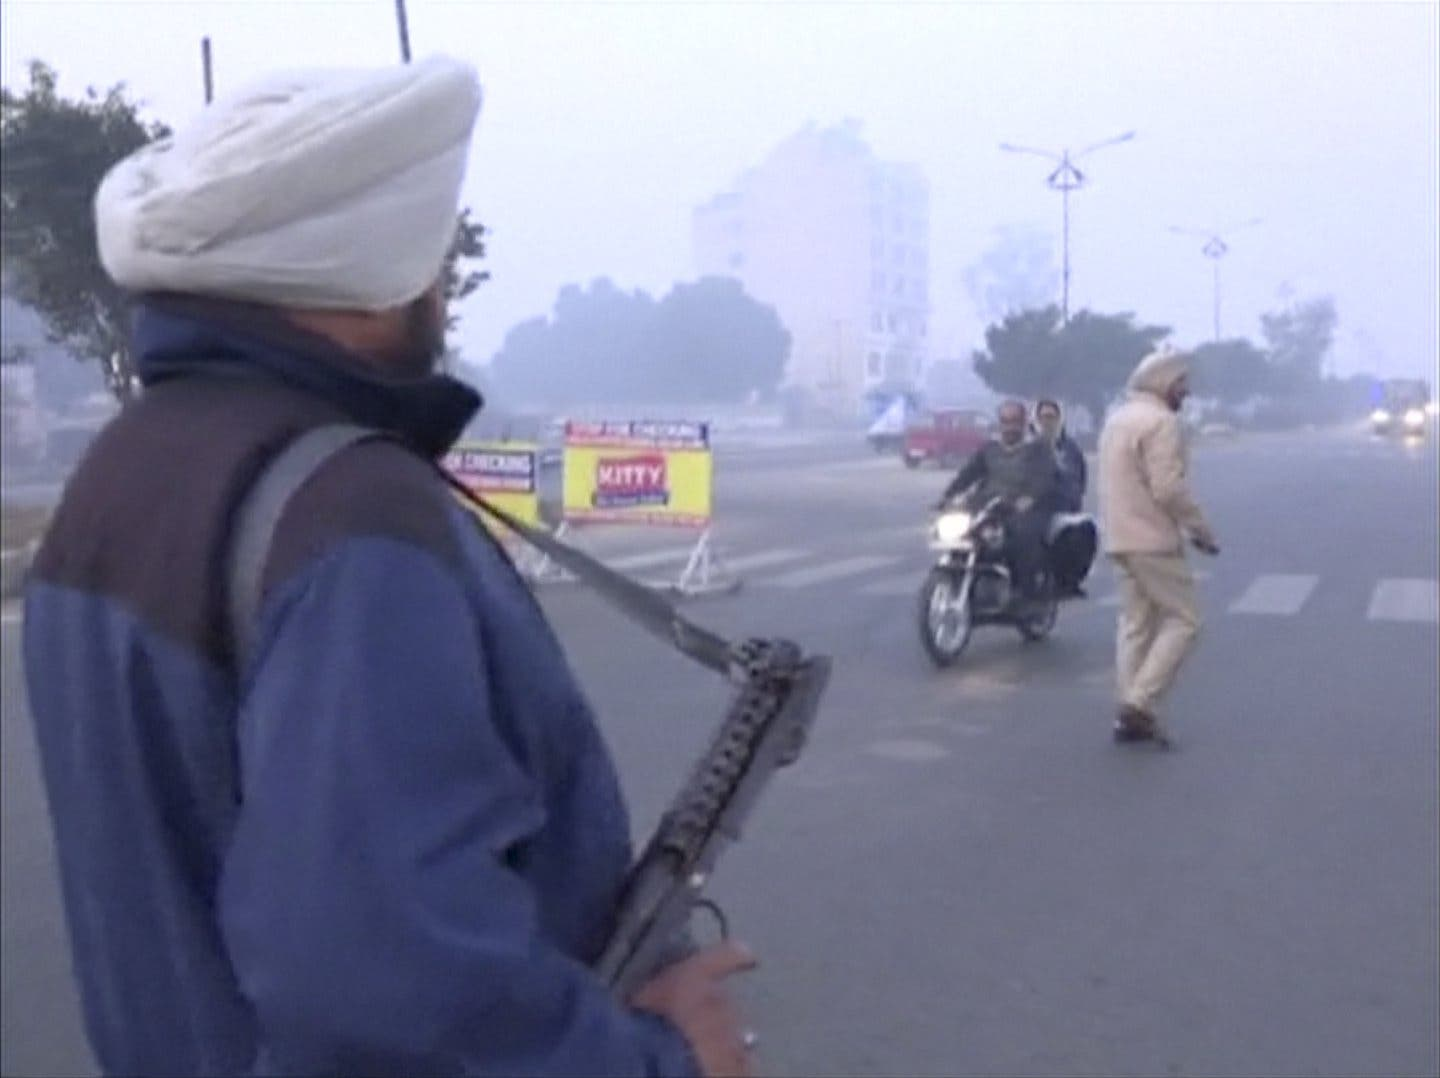 A policeman stands guard with a gun as vehicles pass by, following what officials said was an attack on an Indian Air Force base in Pathankot on Saturday, near the border with Pakistan, in Ludhiana, Punjab state, India, in this still frame taken from video, January 2, 2016. reuters